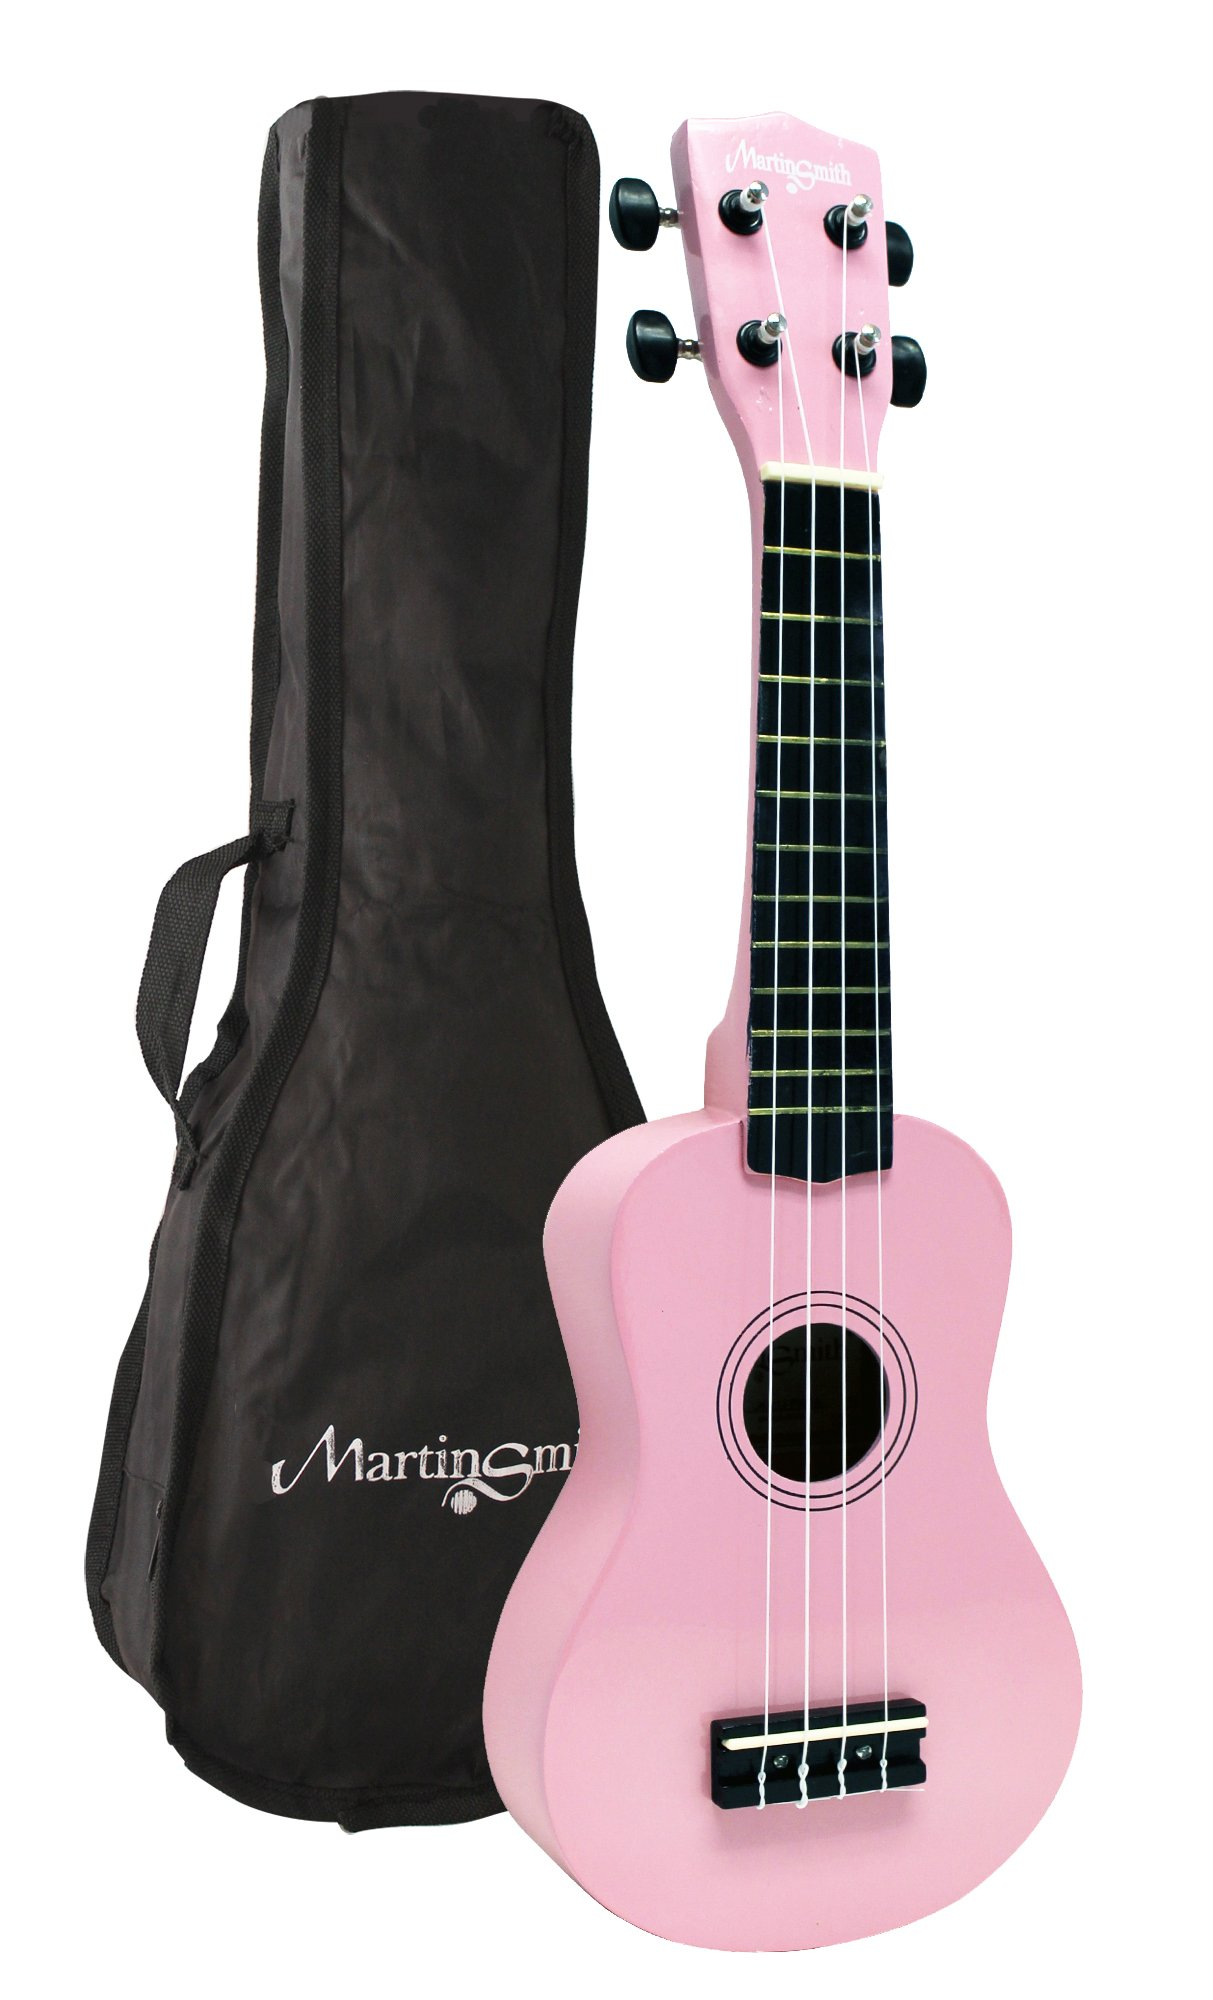 Martin Smith UK-212 - The ultimate Soprano Ukulele Starter kit, Pink